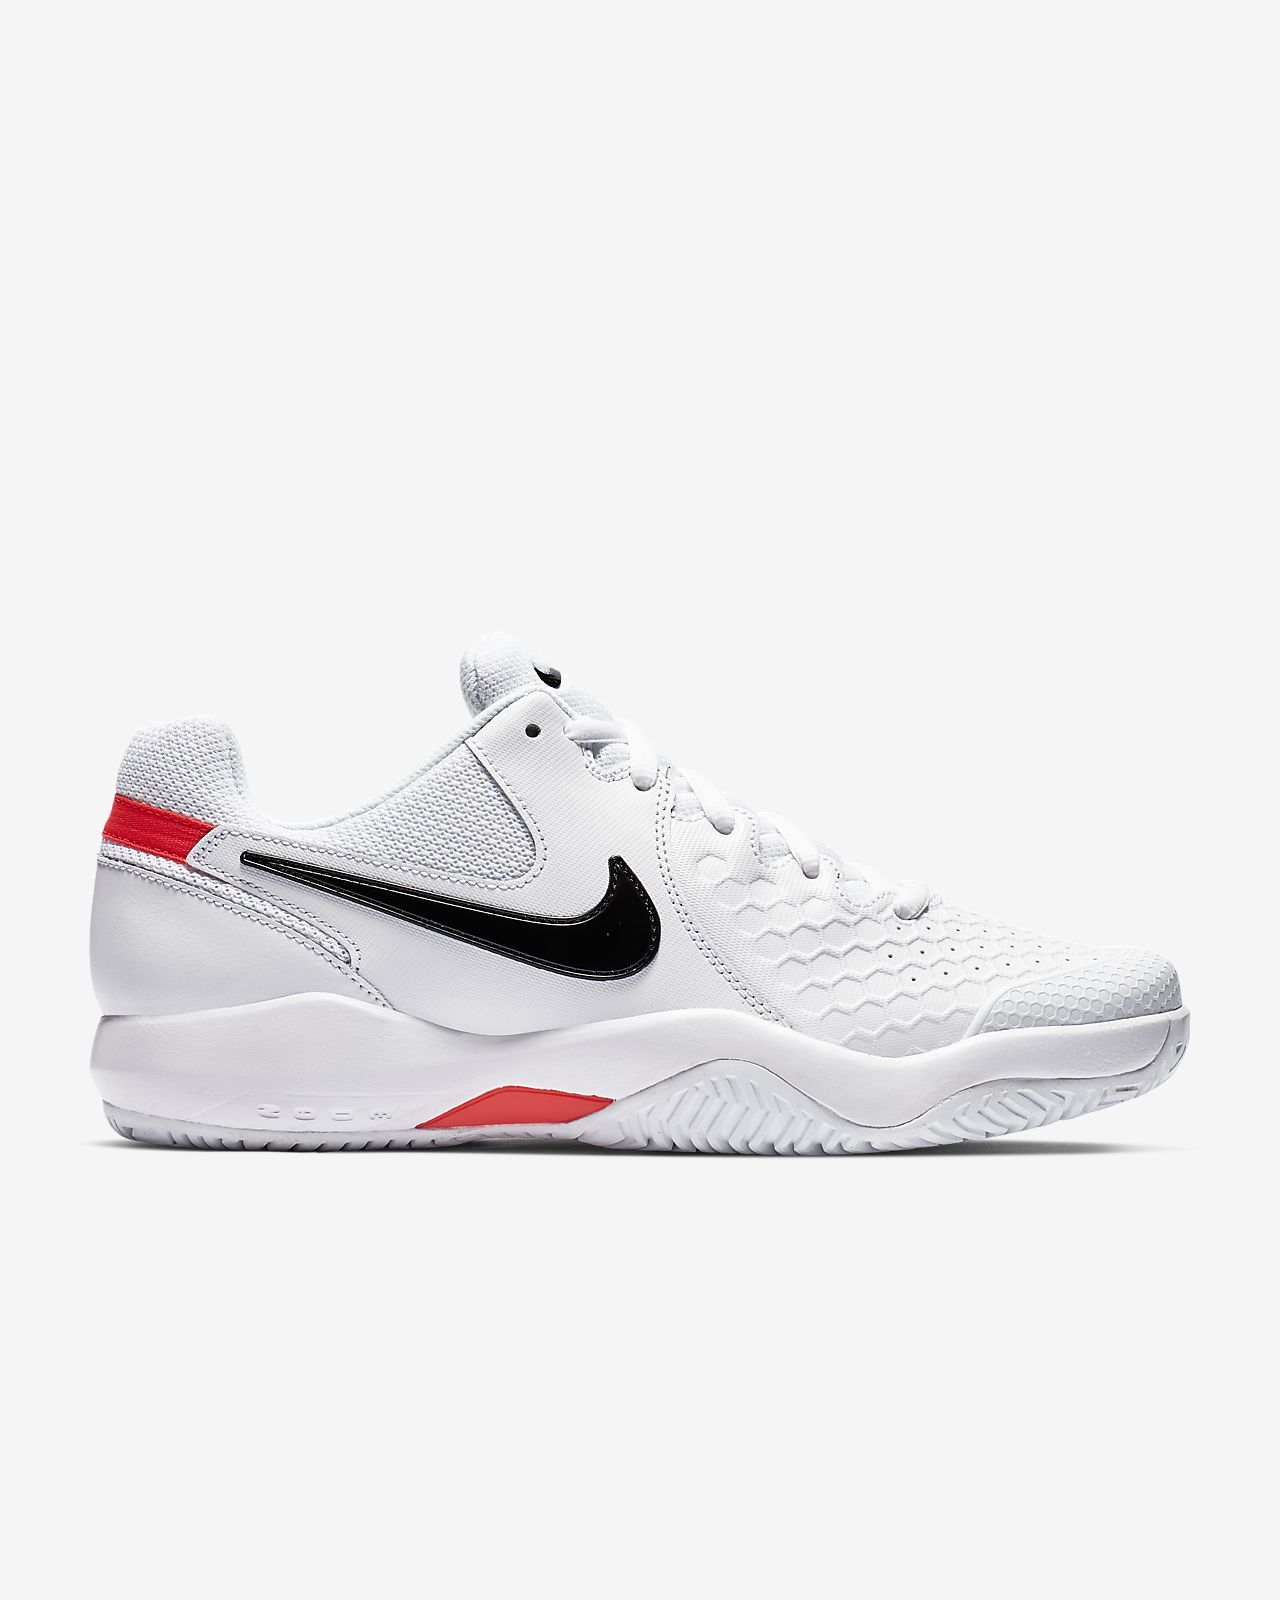 97e587c35ca34 NikeCourt Air Zoom Resistance Men s Hard Court Tennis Shoe. Nike.com